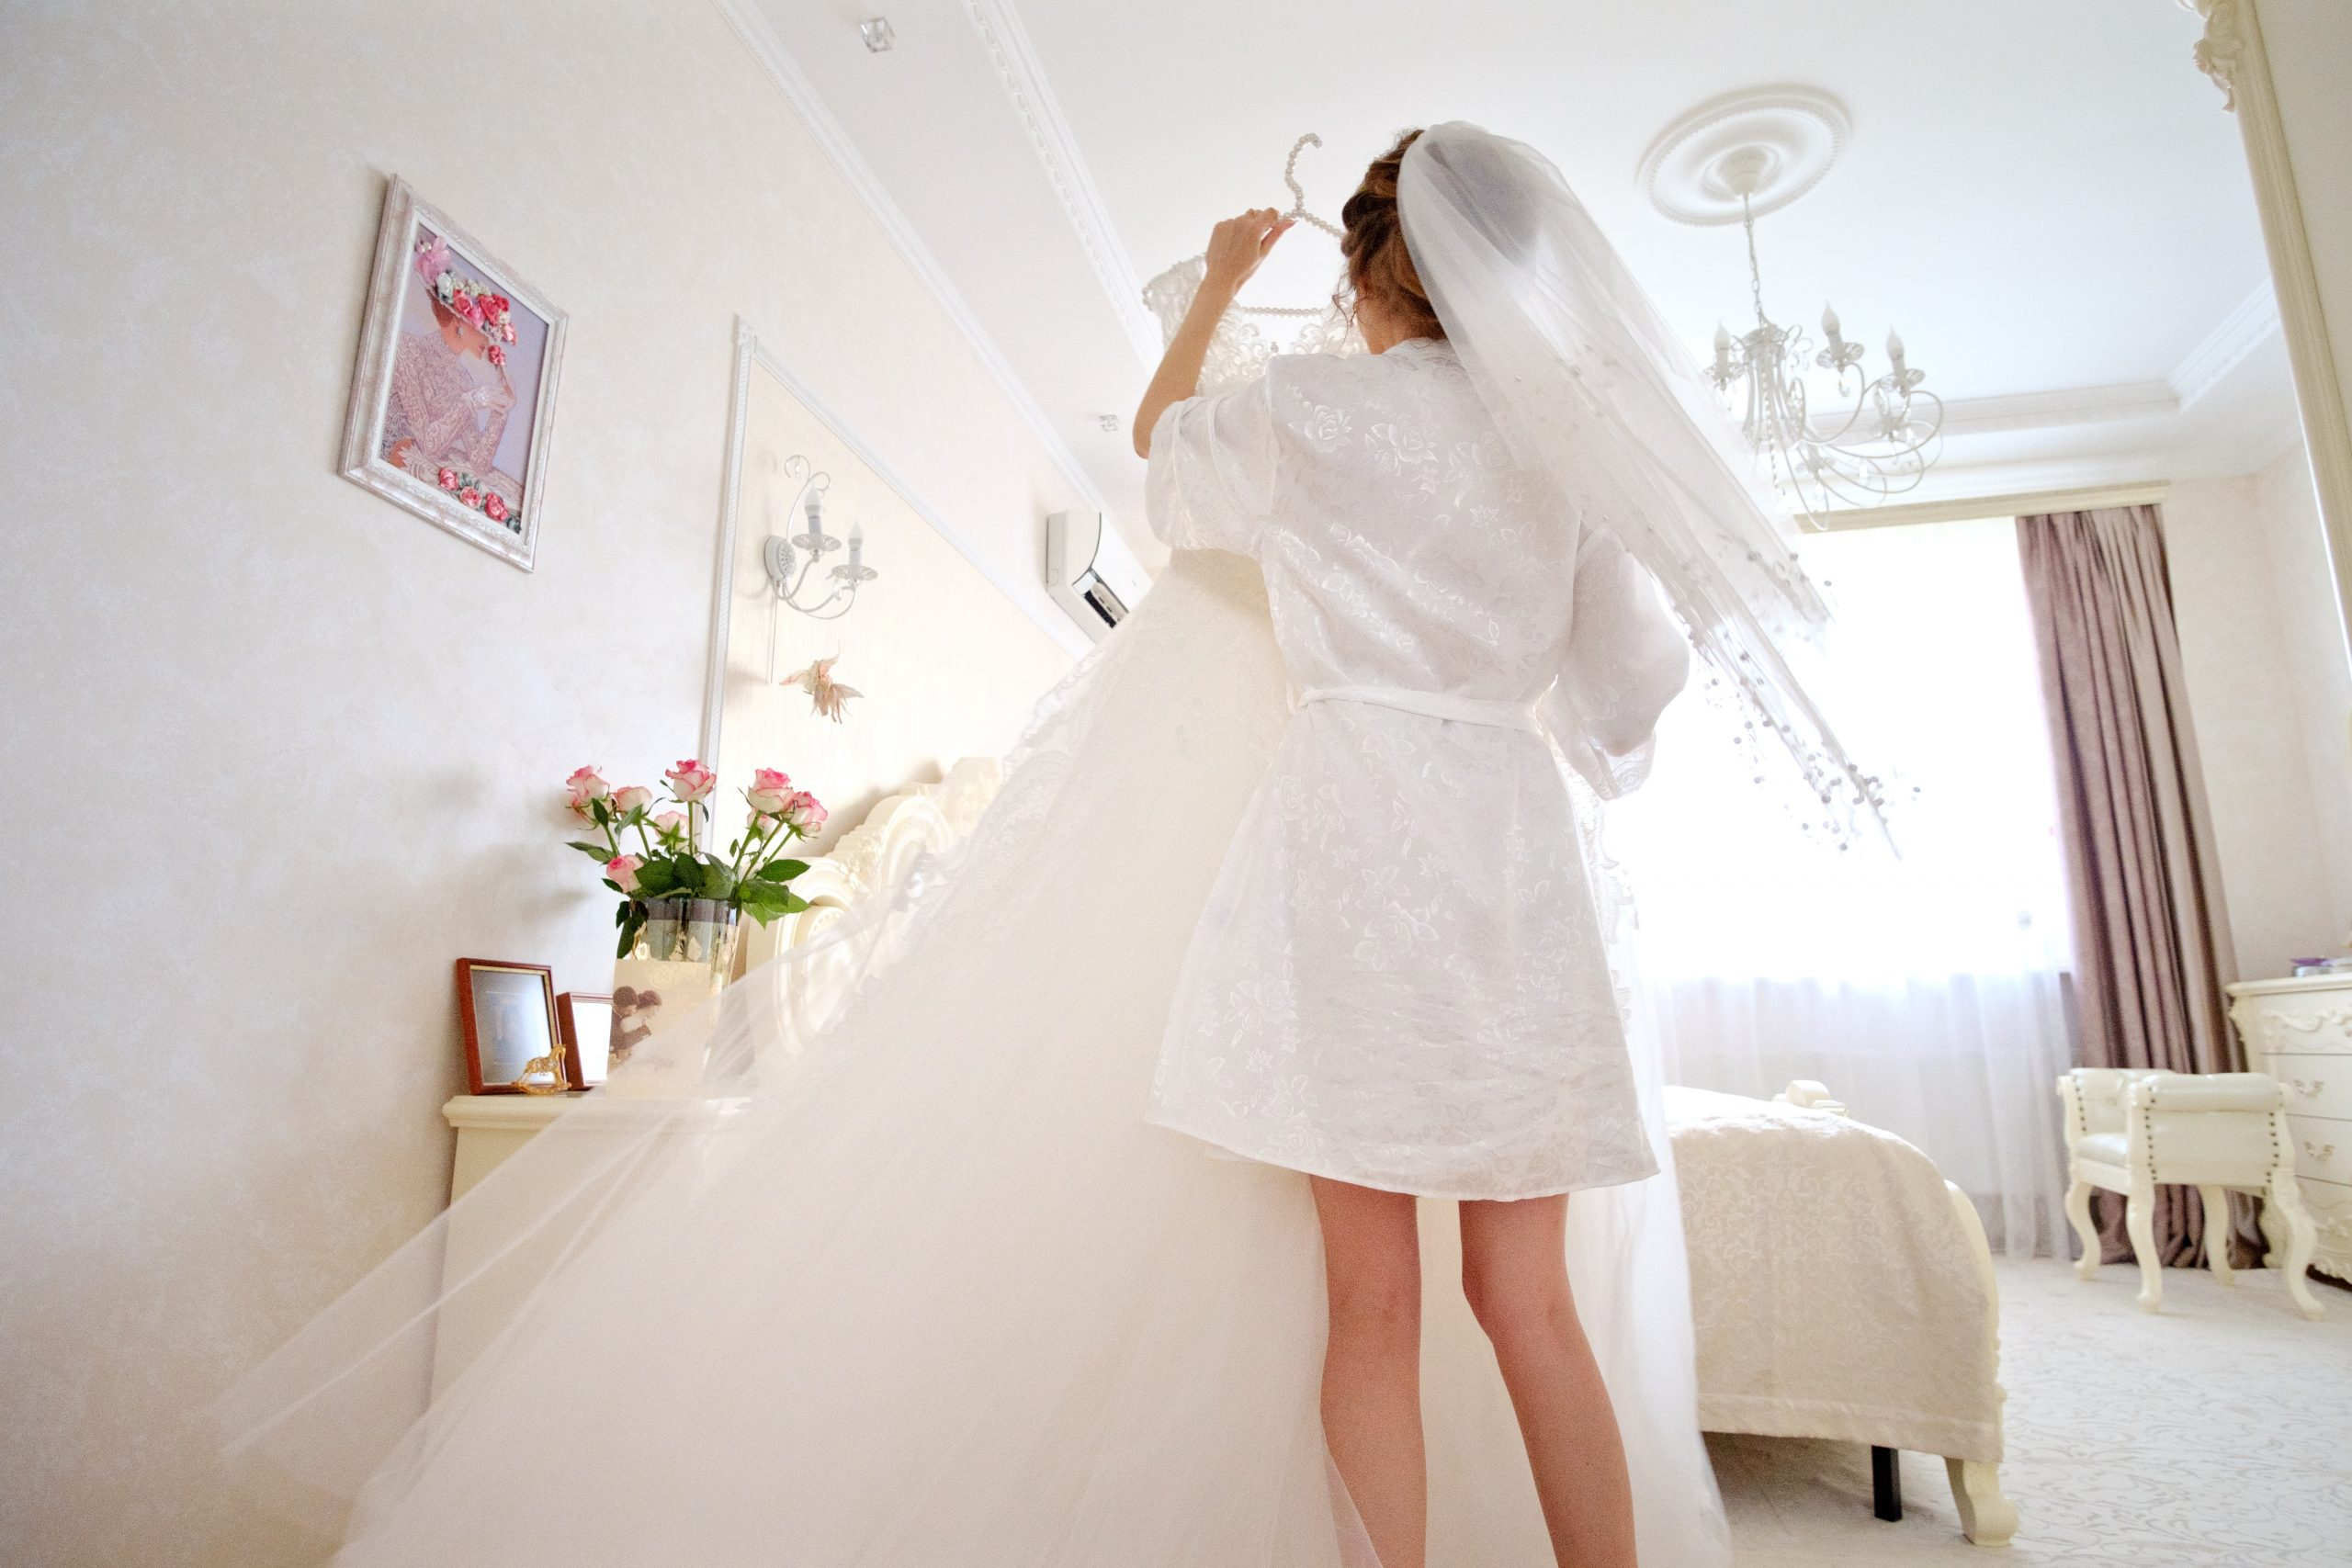 Wedding Dress Shopping: 8 Tips and Advice for the Newly Engaged Bride